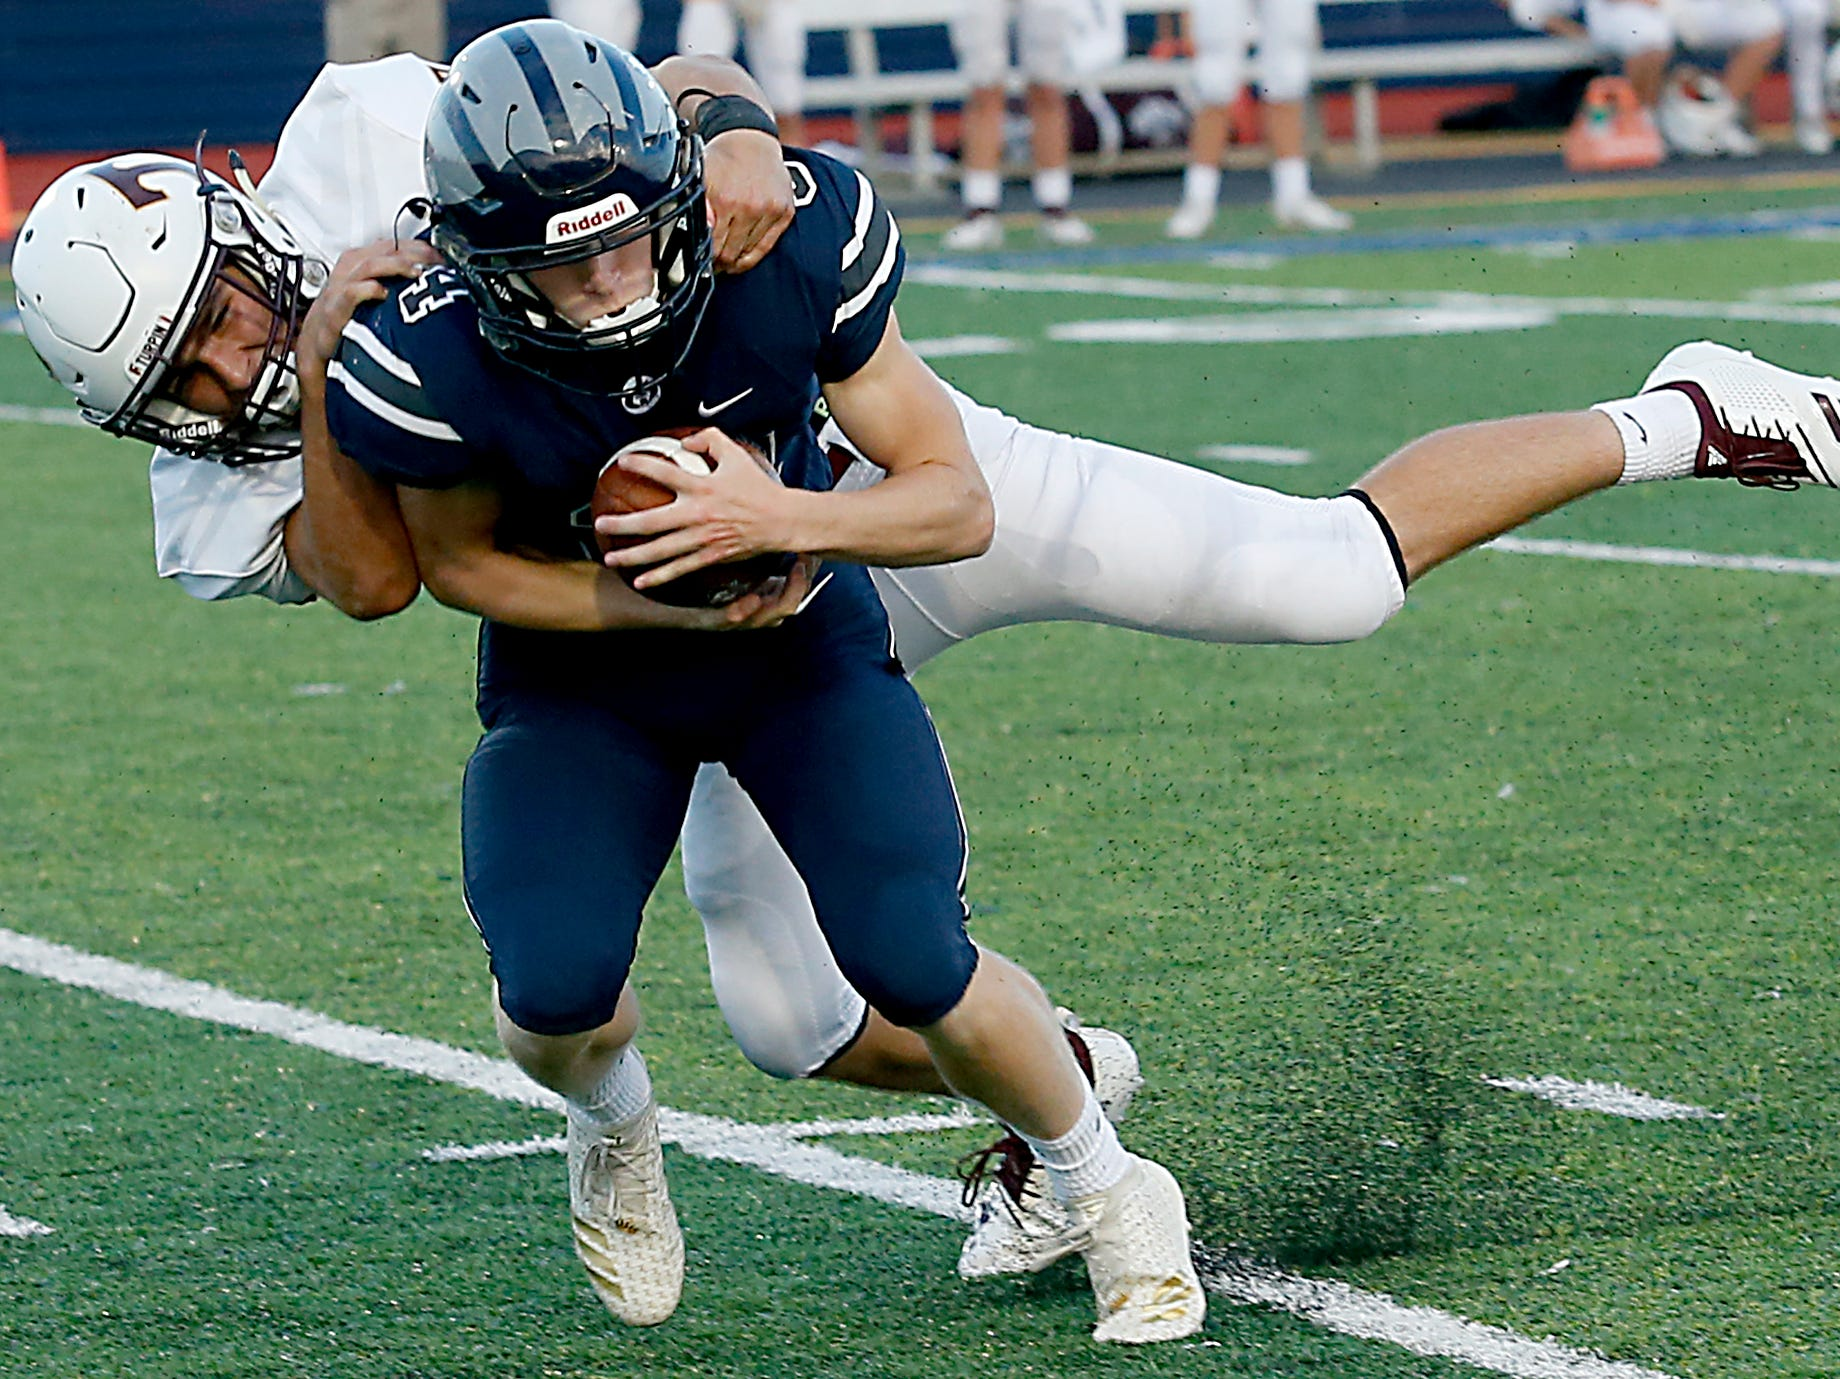 West Clermont's Ryan Cann hauls in a pass as Turpin's Sam Machenheimer pulls him down during their 2018 Skyline Chili Crosstown Showdown at West Clermont Friday, Sept. 14, 2018.